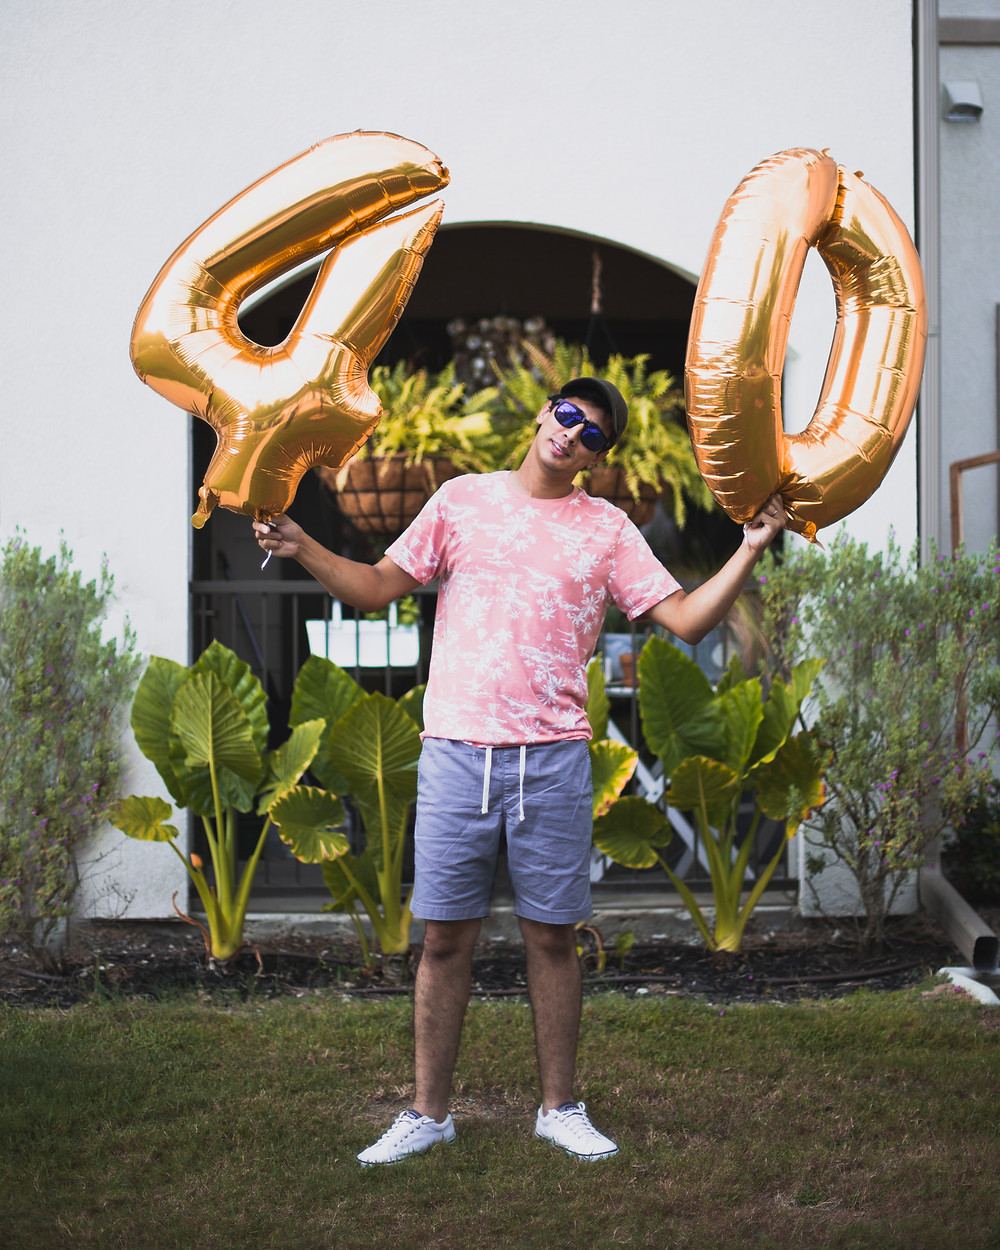 Carlos is holding two gold baloons, one is a  4 and the other is a 0